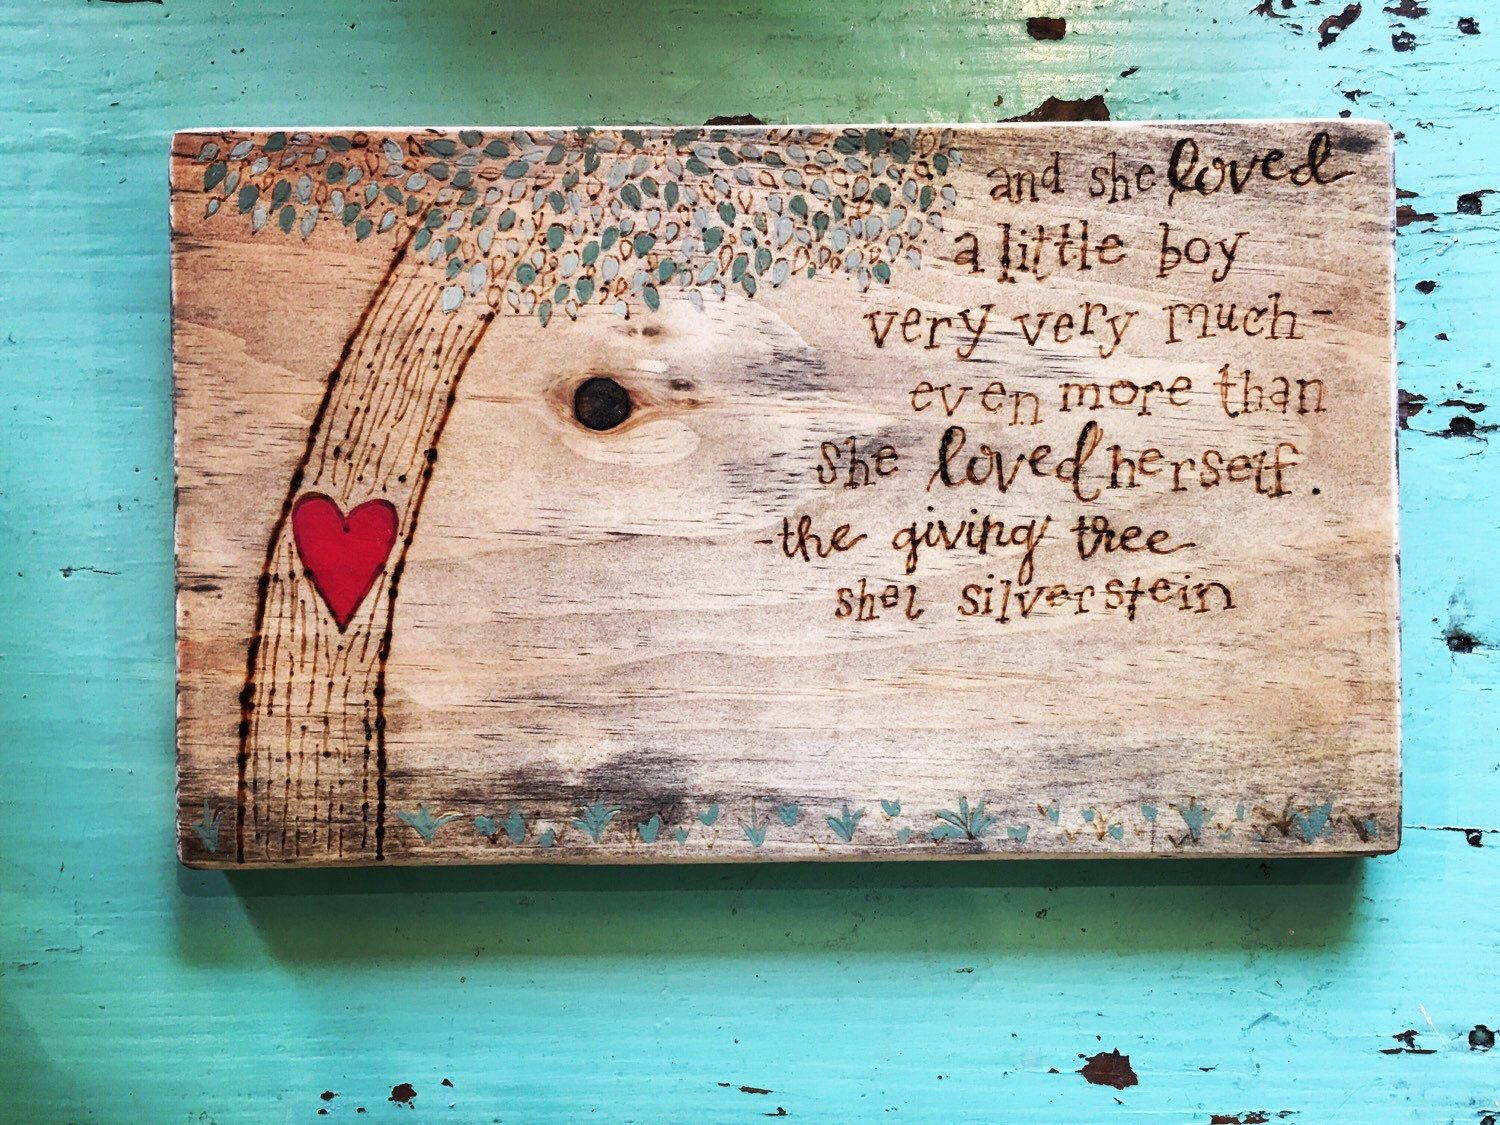 The Giving Tree Quotes: Hand Lettered & Wood Burned Shel Silverstein, The Giving